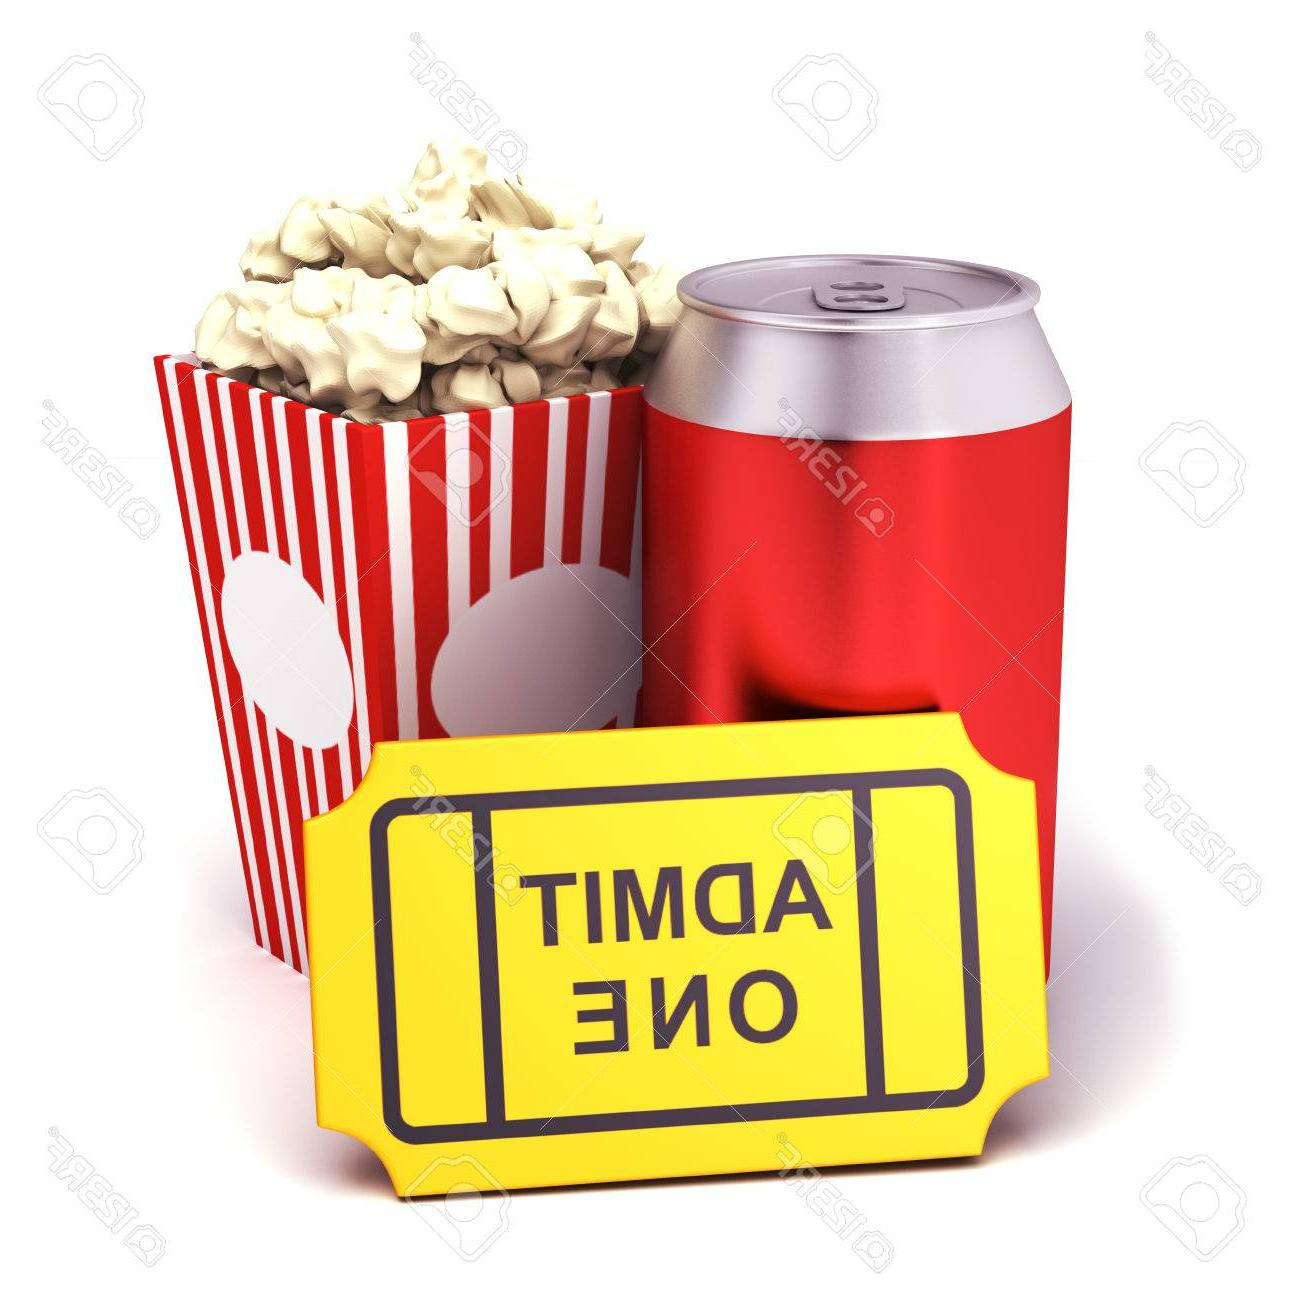 1300x1300 Top Soda Popcorn Stock Photo Design